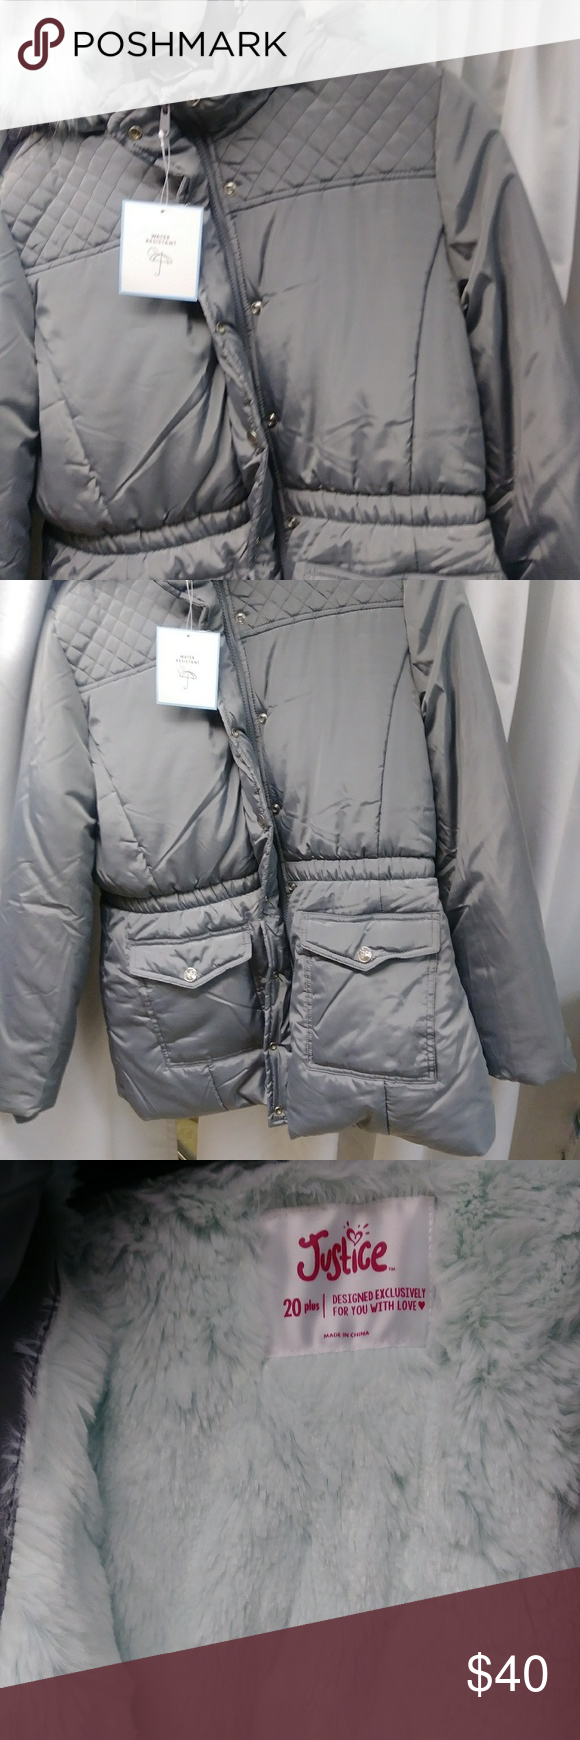 02a47d6be3f3 Girl Justice puffer coat jacket in 2019